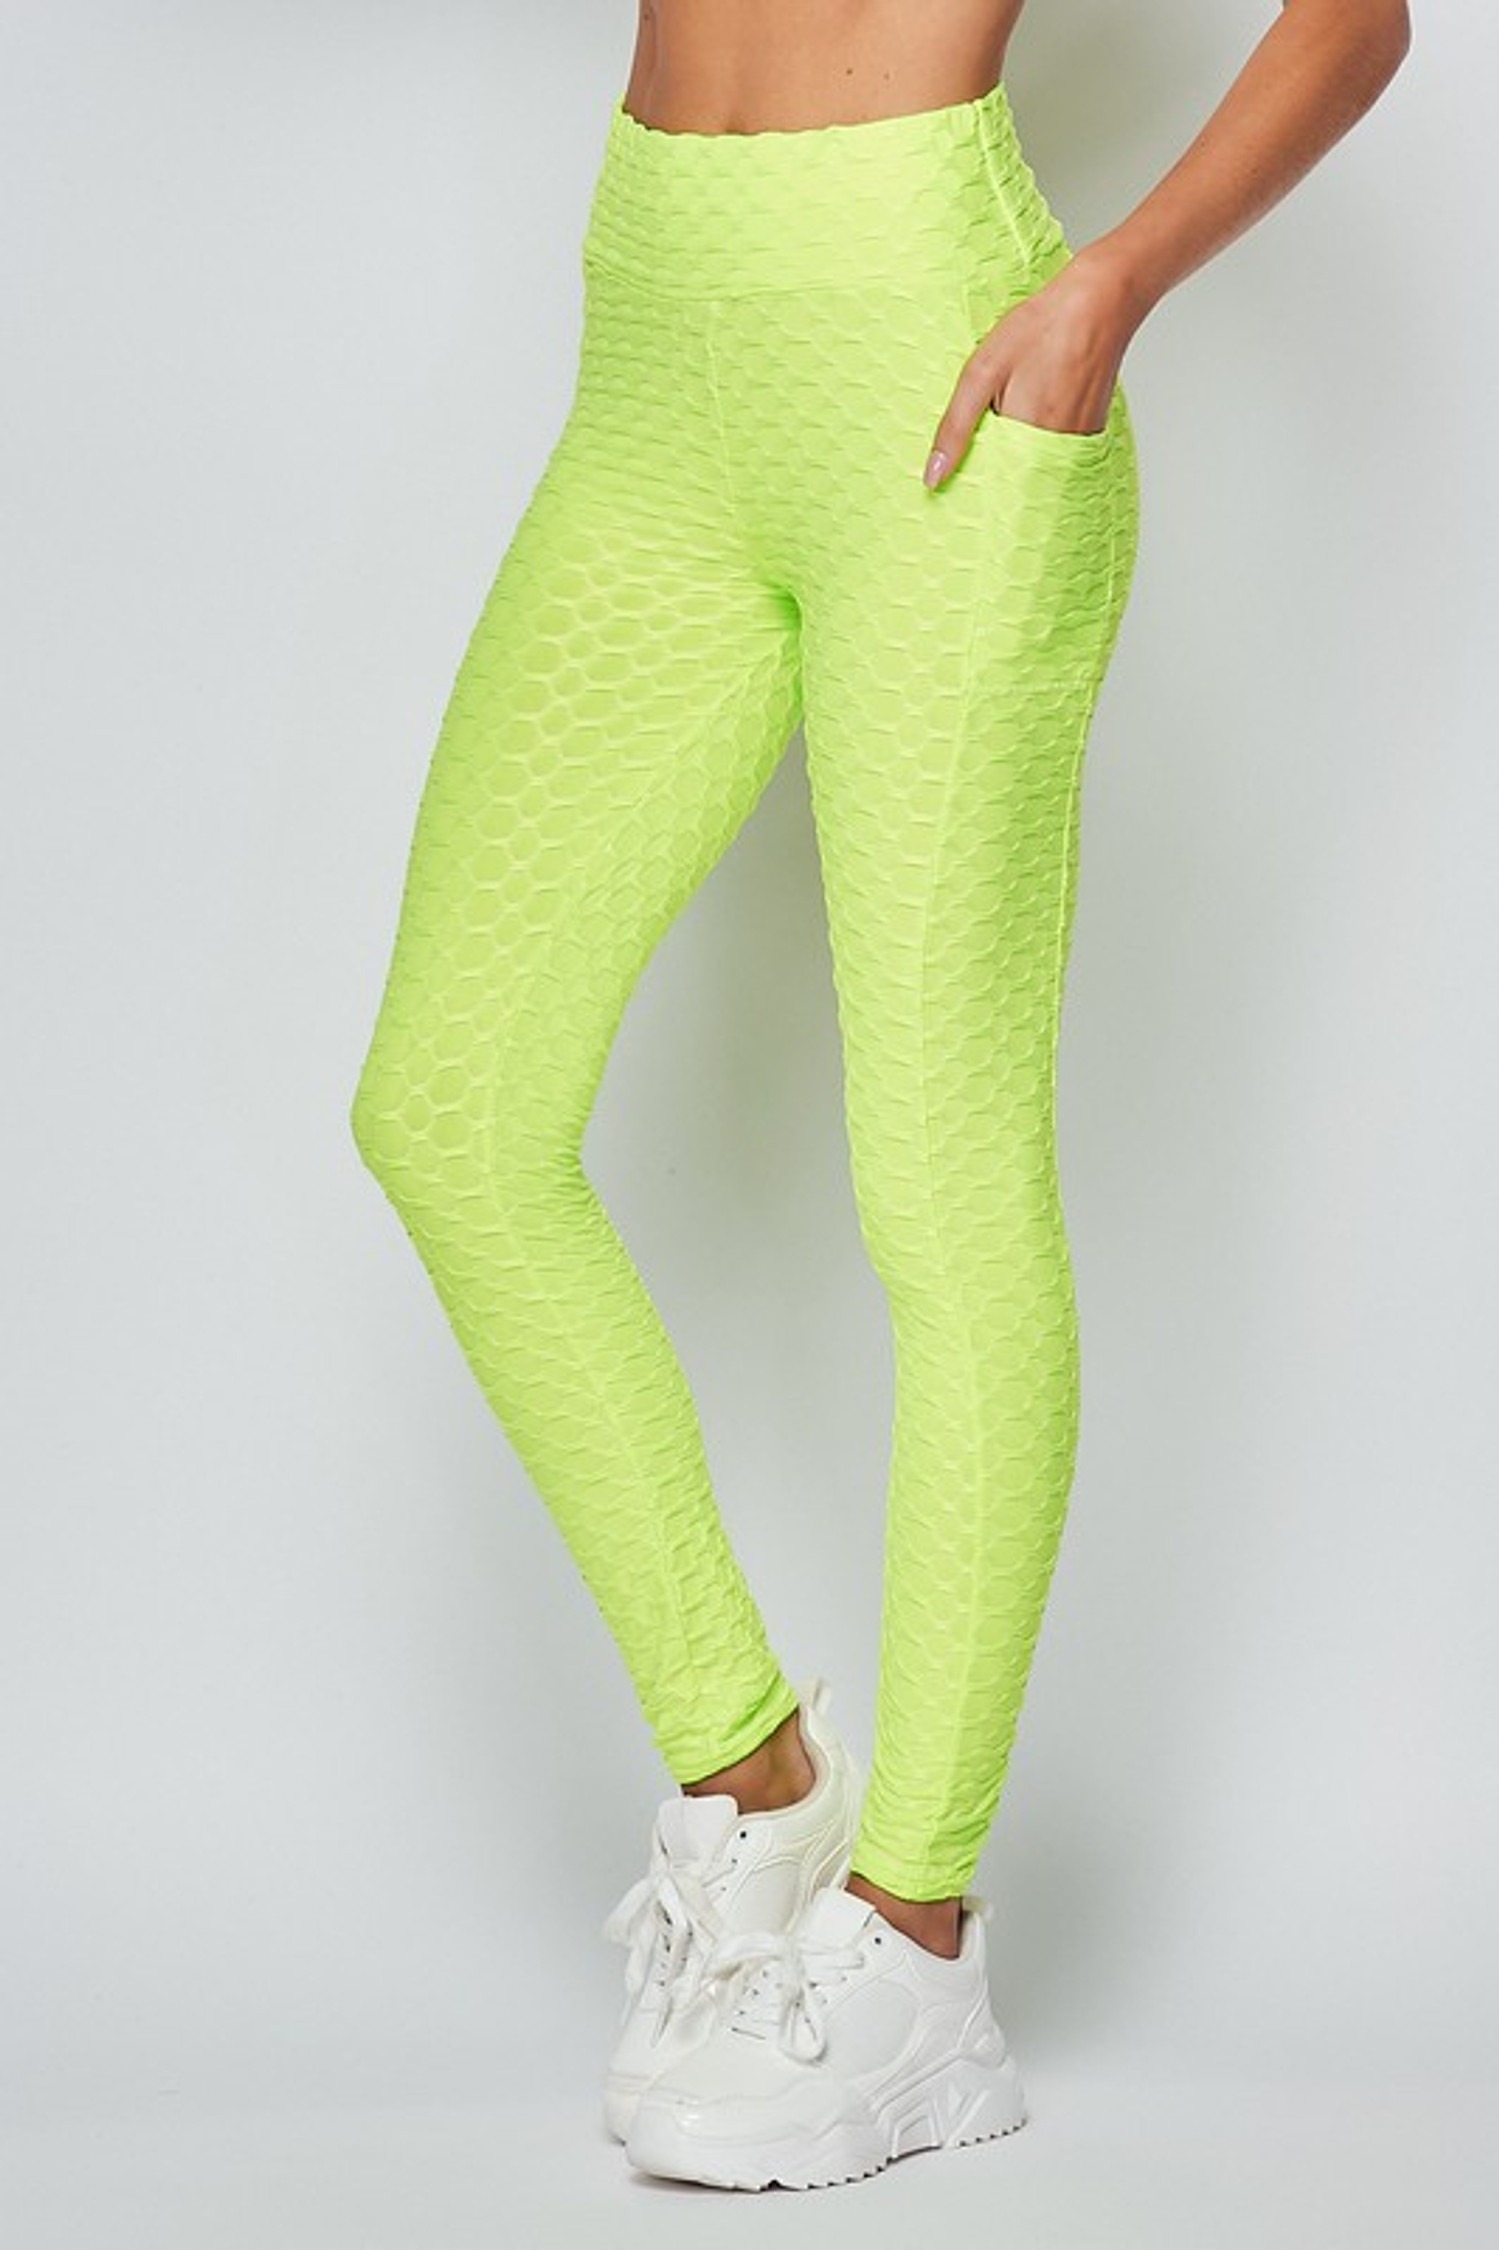 45 degree view of Neon Green Scrunch Butt Popcorn Textured High Waisted Leggings with Pockets - Zinati (W&J)